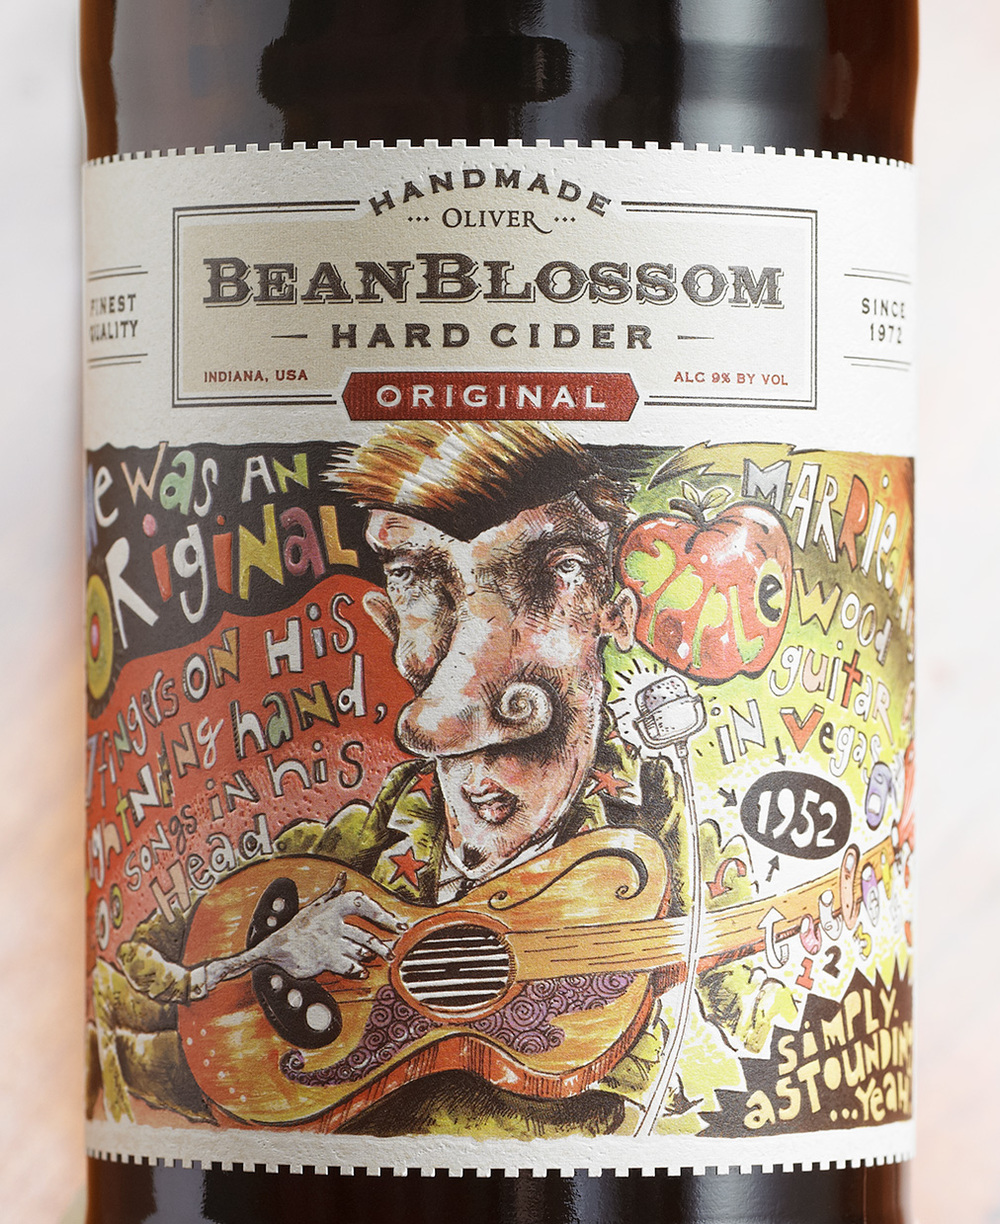 Bean Blossom Original label-2.jpg